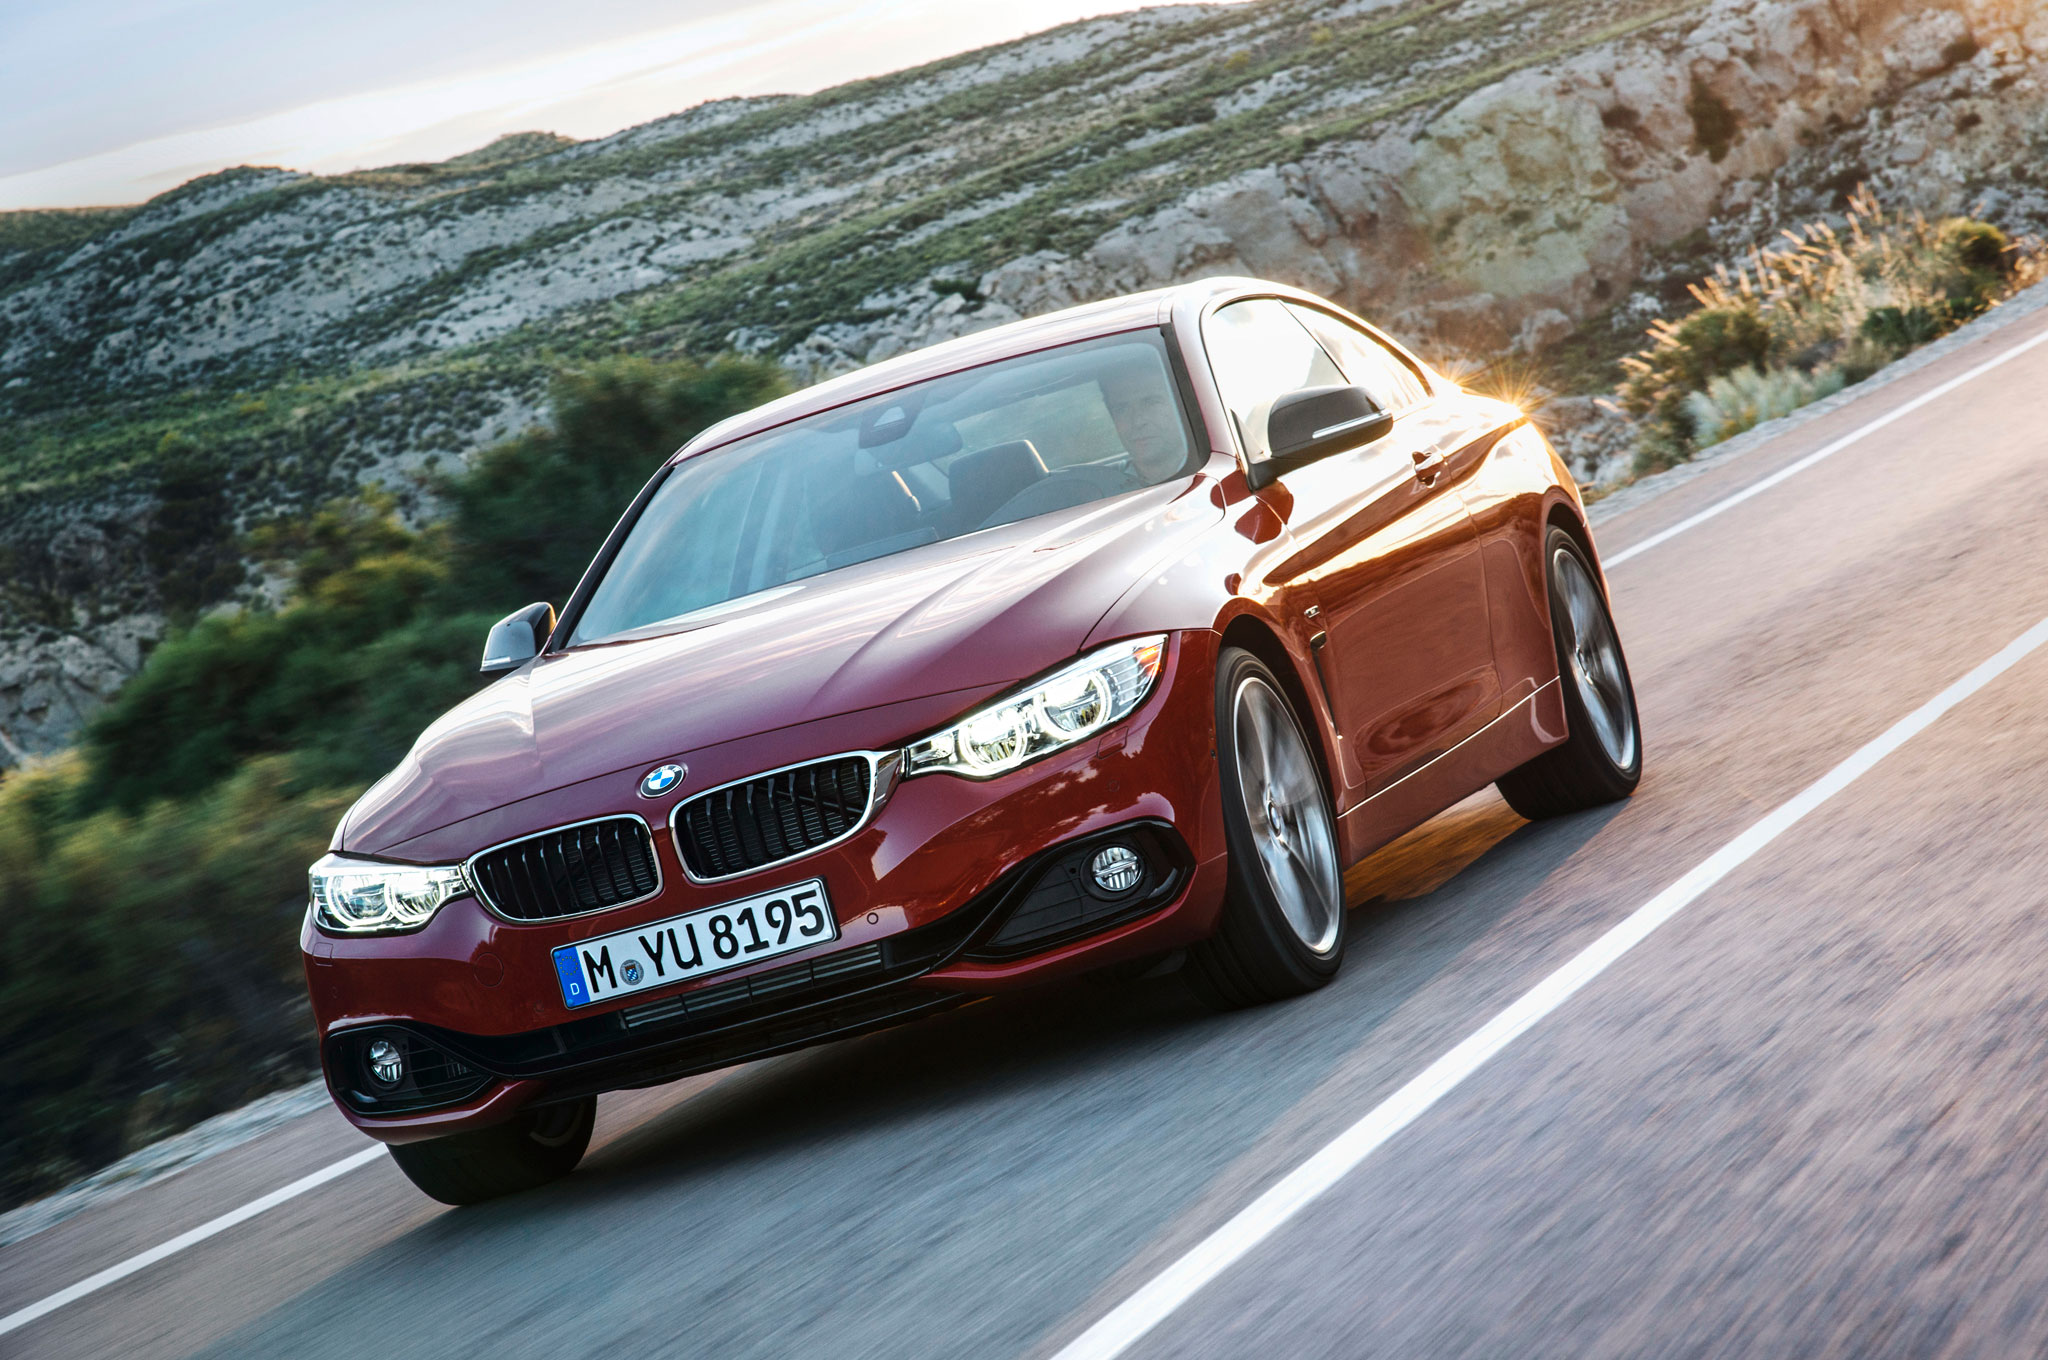 2014 bmw 4 series first look automobile magazine under sciox Choice Image